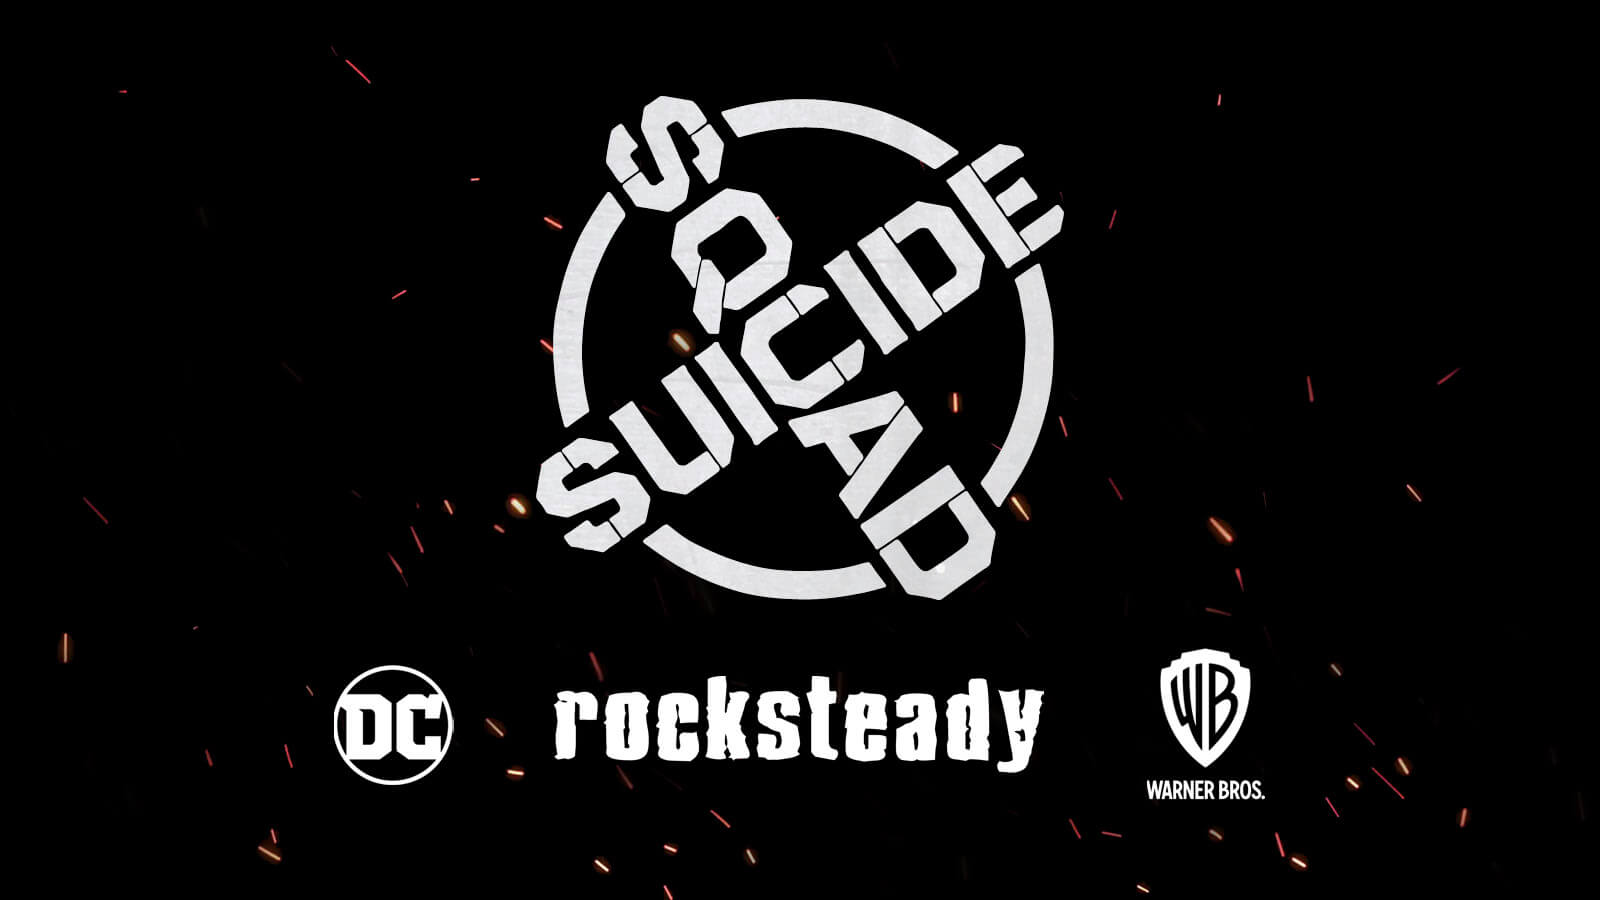 suicide squad game teased dc fandome event rocksteady studios task force x superrman warner bros wb games